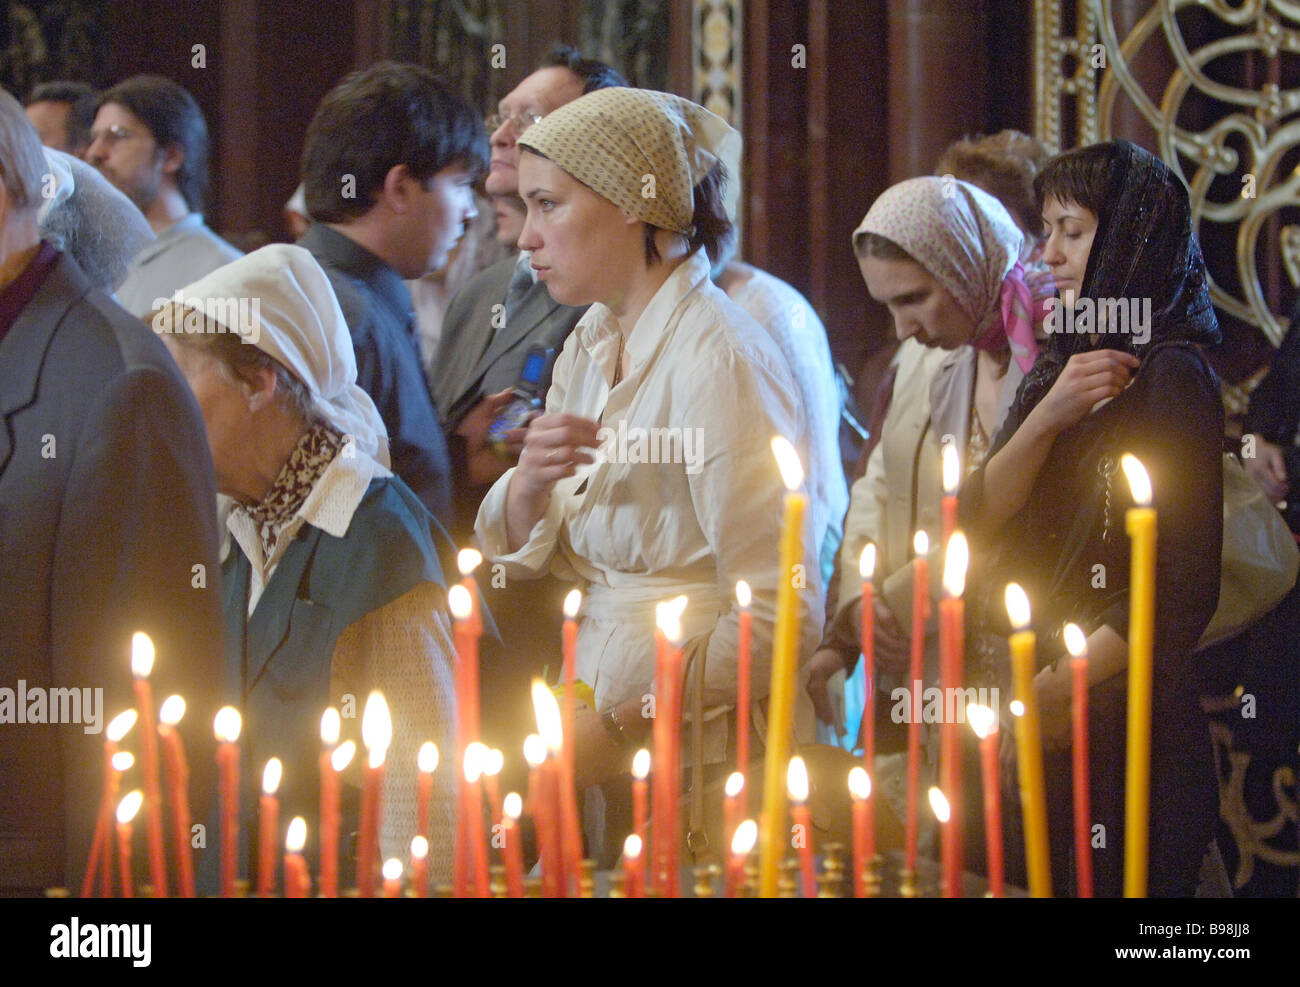 Orthodox Christians at the Cathedral of Christ the Savior in Moscow where an Act of Canonical Communion was signed - Stock Image